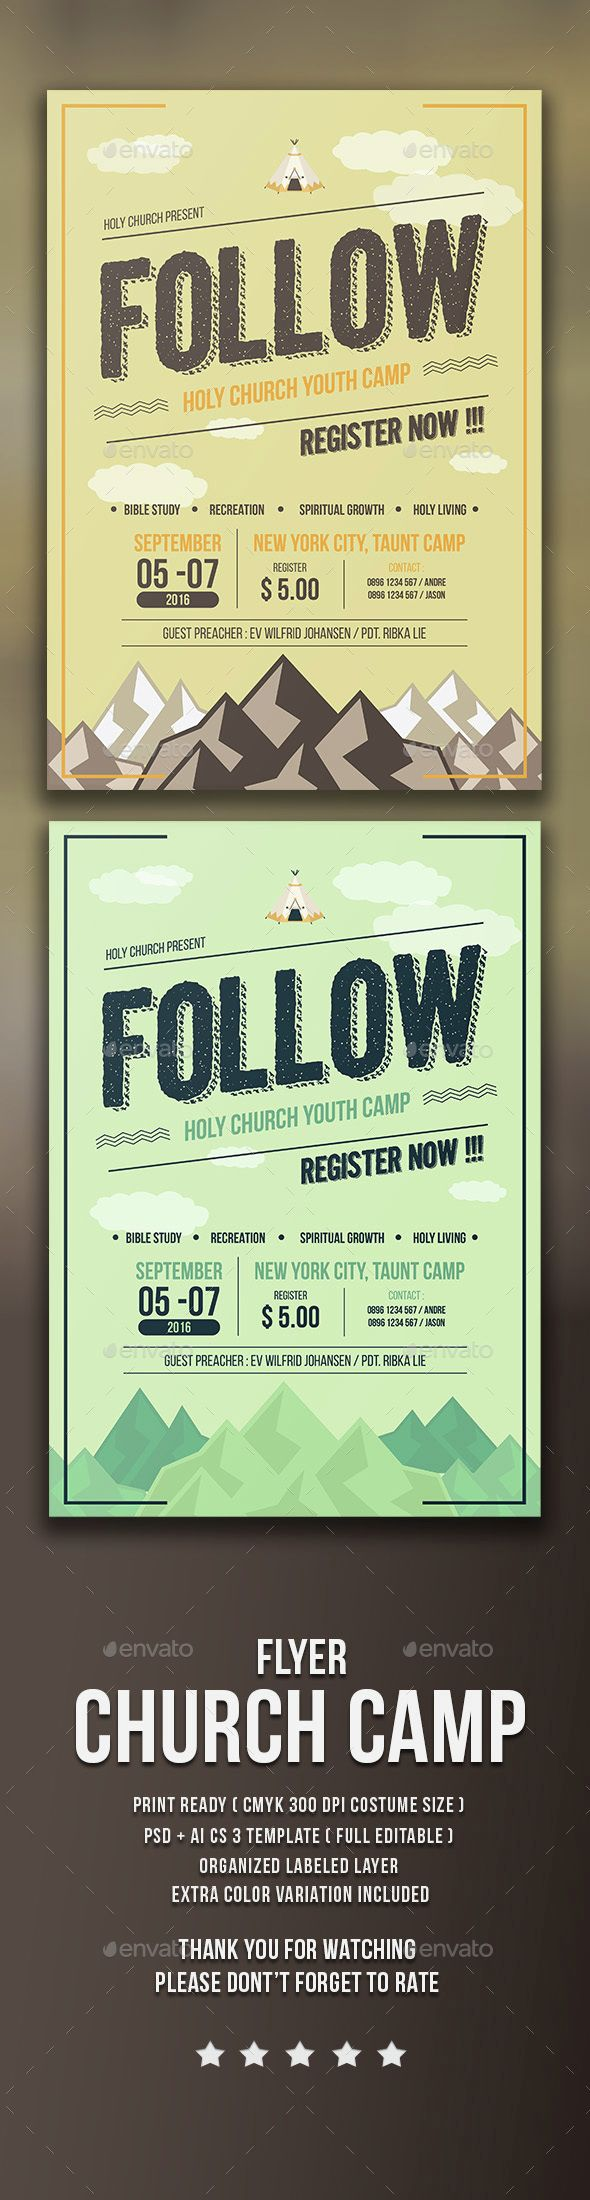 Captivating Church Camp Flyer